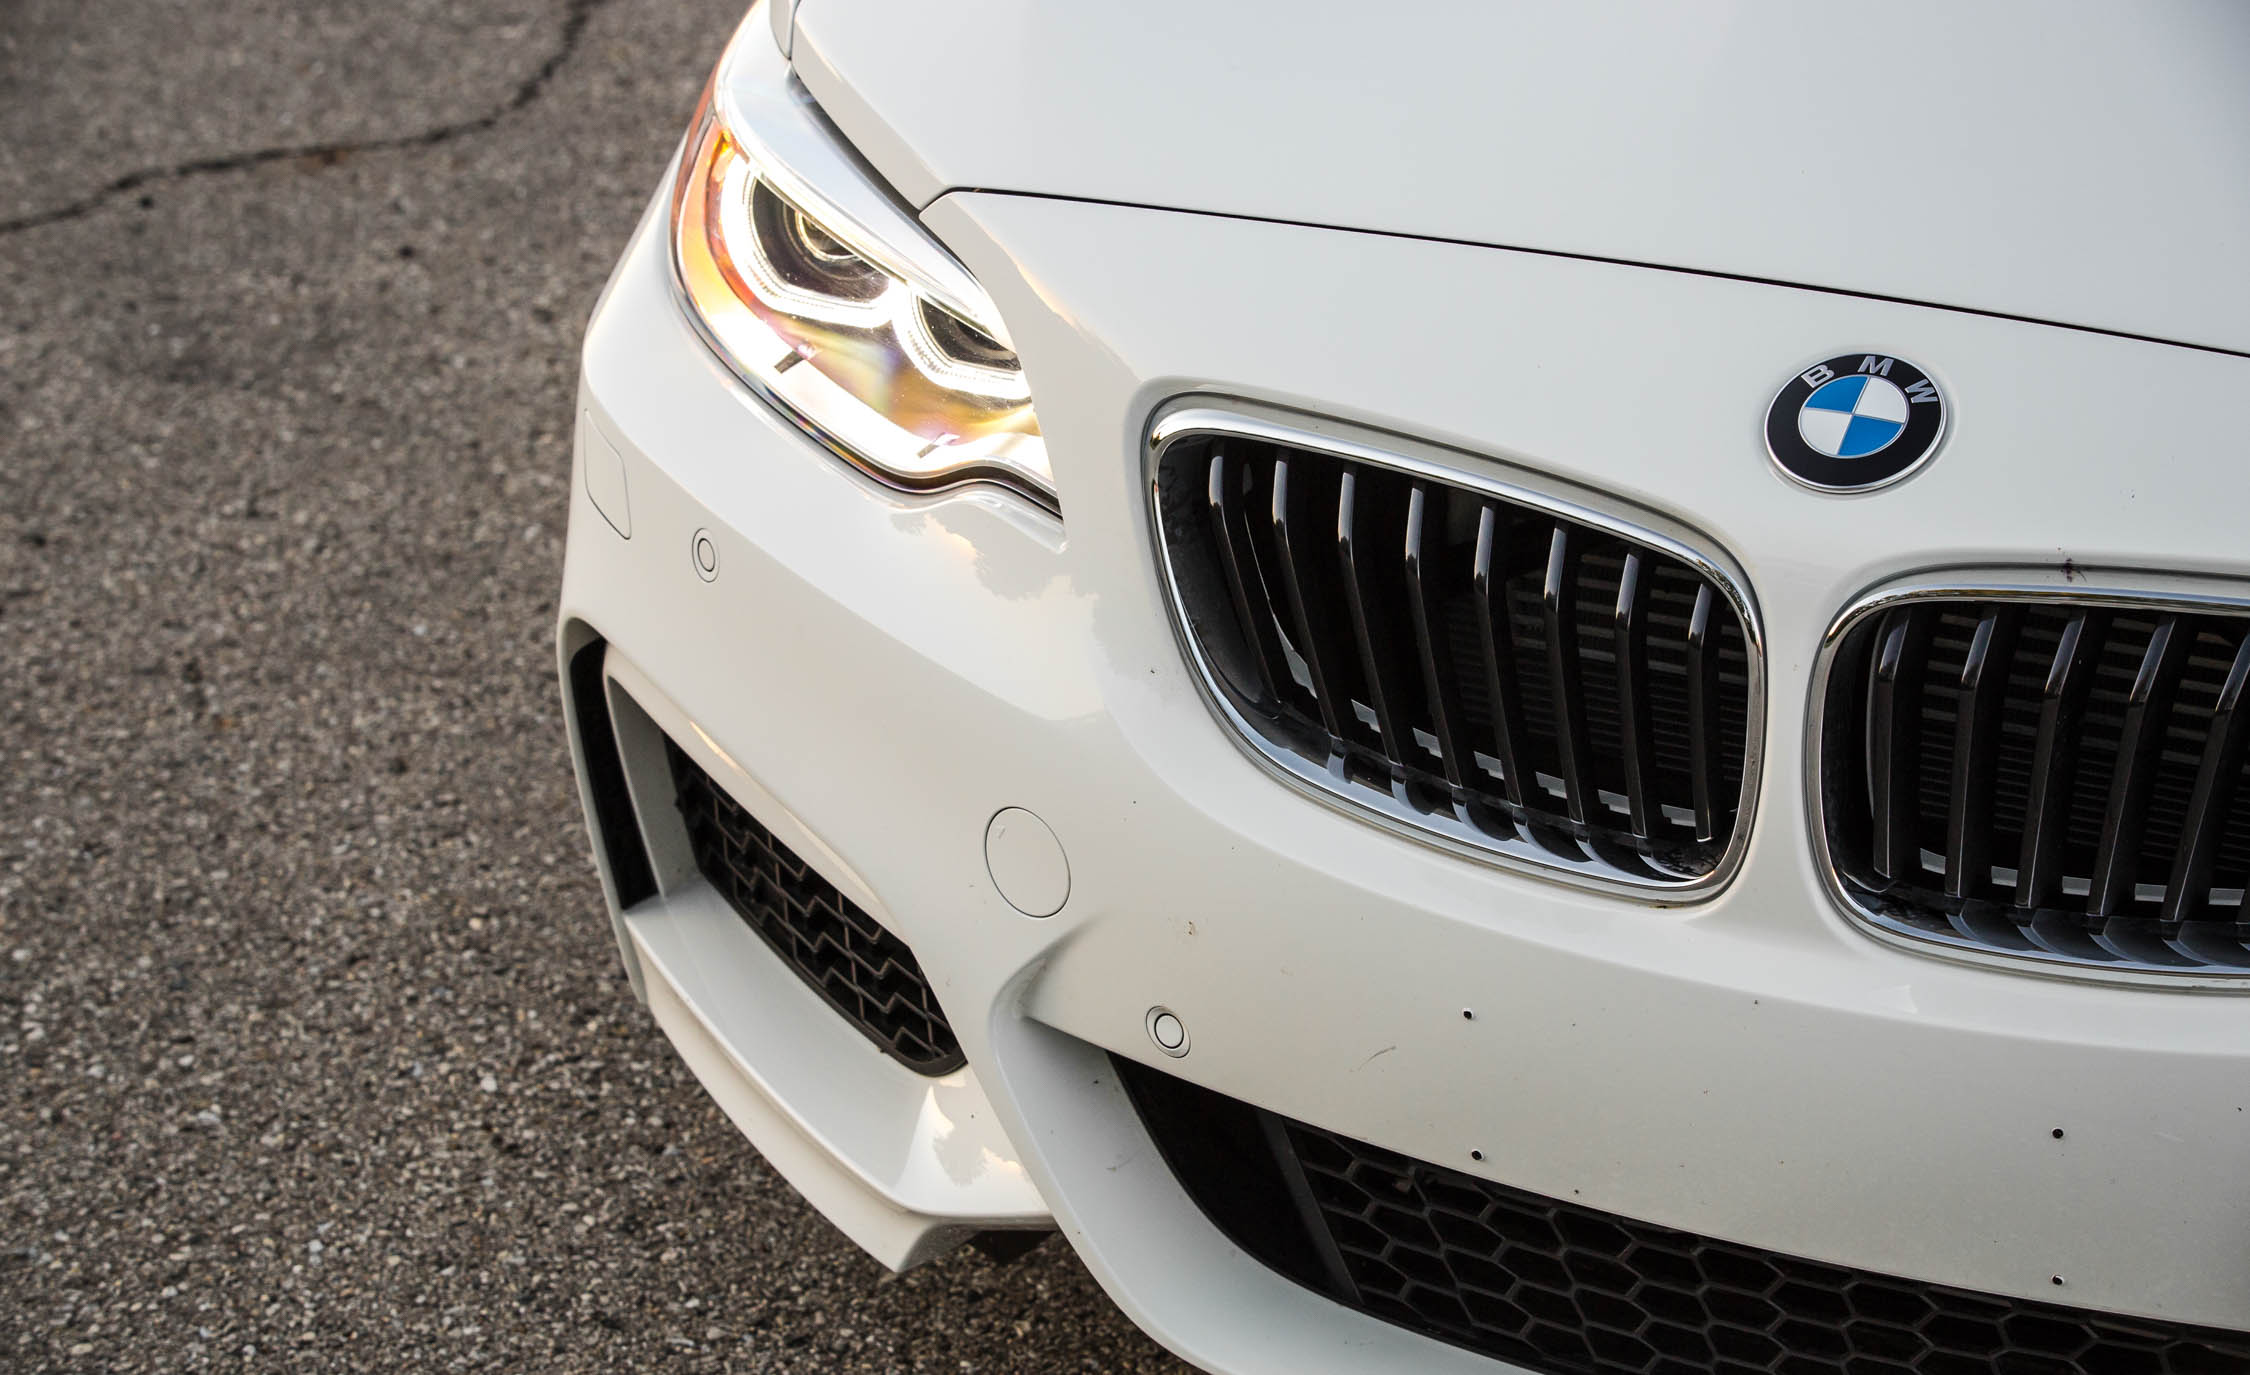 2017 BMW M240i Coupe Automatic Exterior View Front Bumper (Photo 6 of 36)